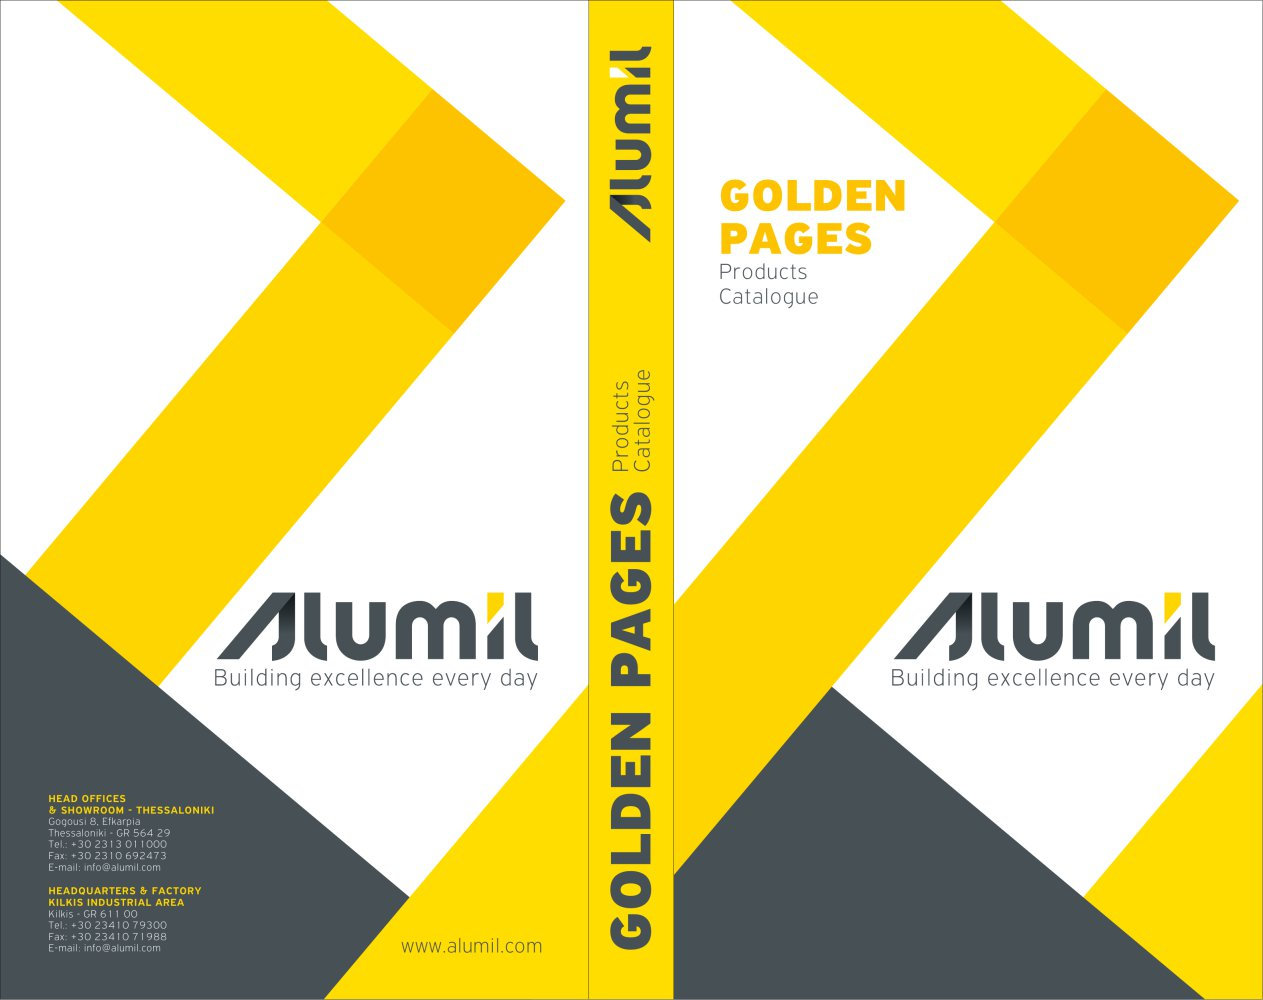 golden pages products catalogue alumil s a pdf catalogues